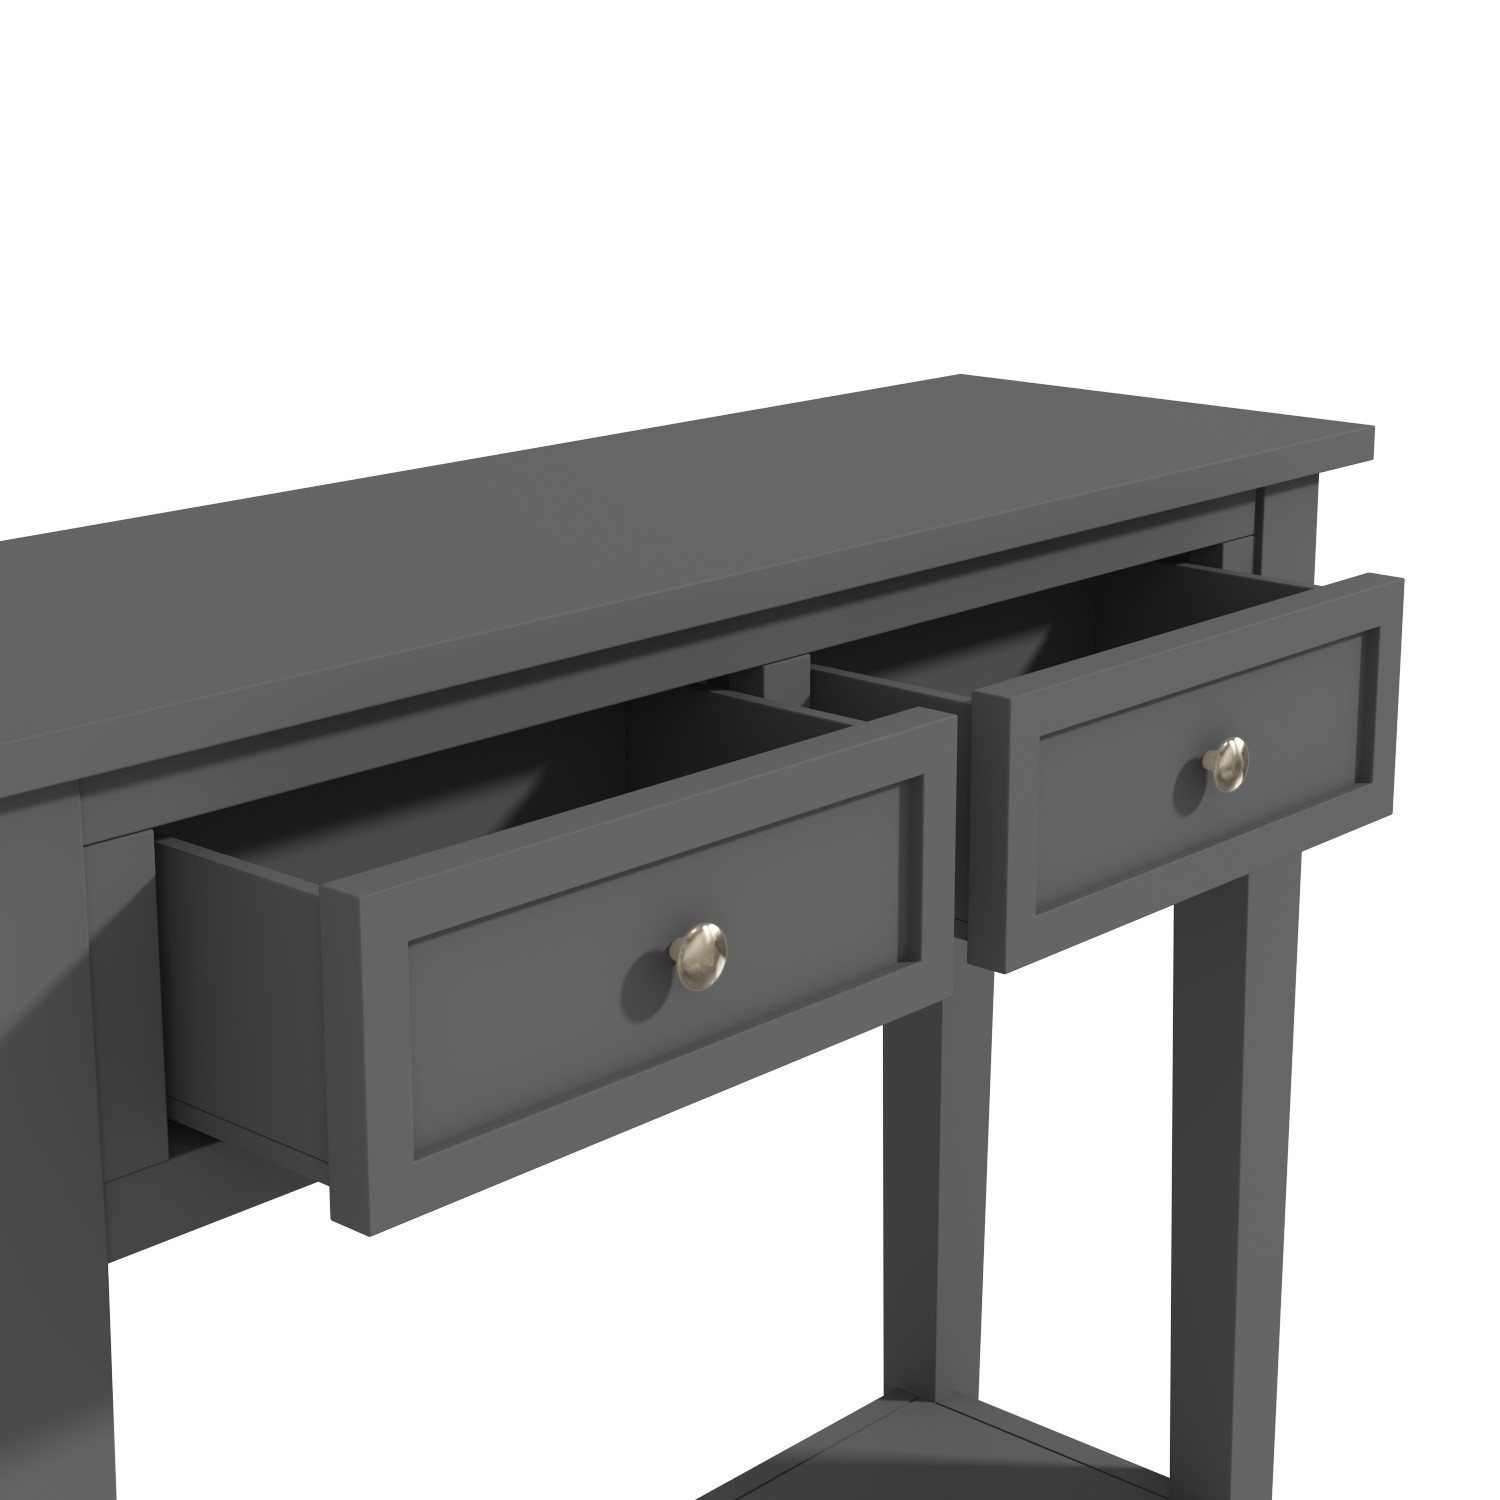 White Resin Folding Table, Narrow Grey Console Table With Drawers Elms Furniture123